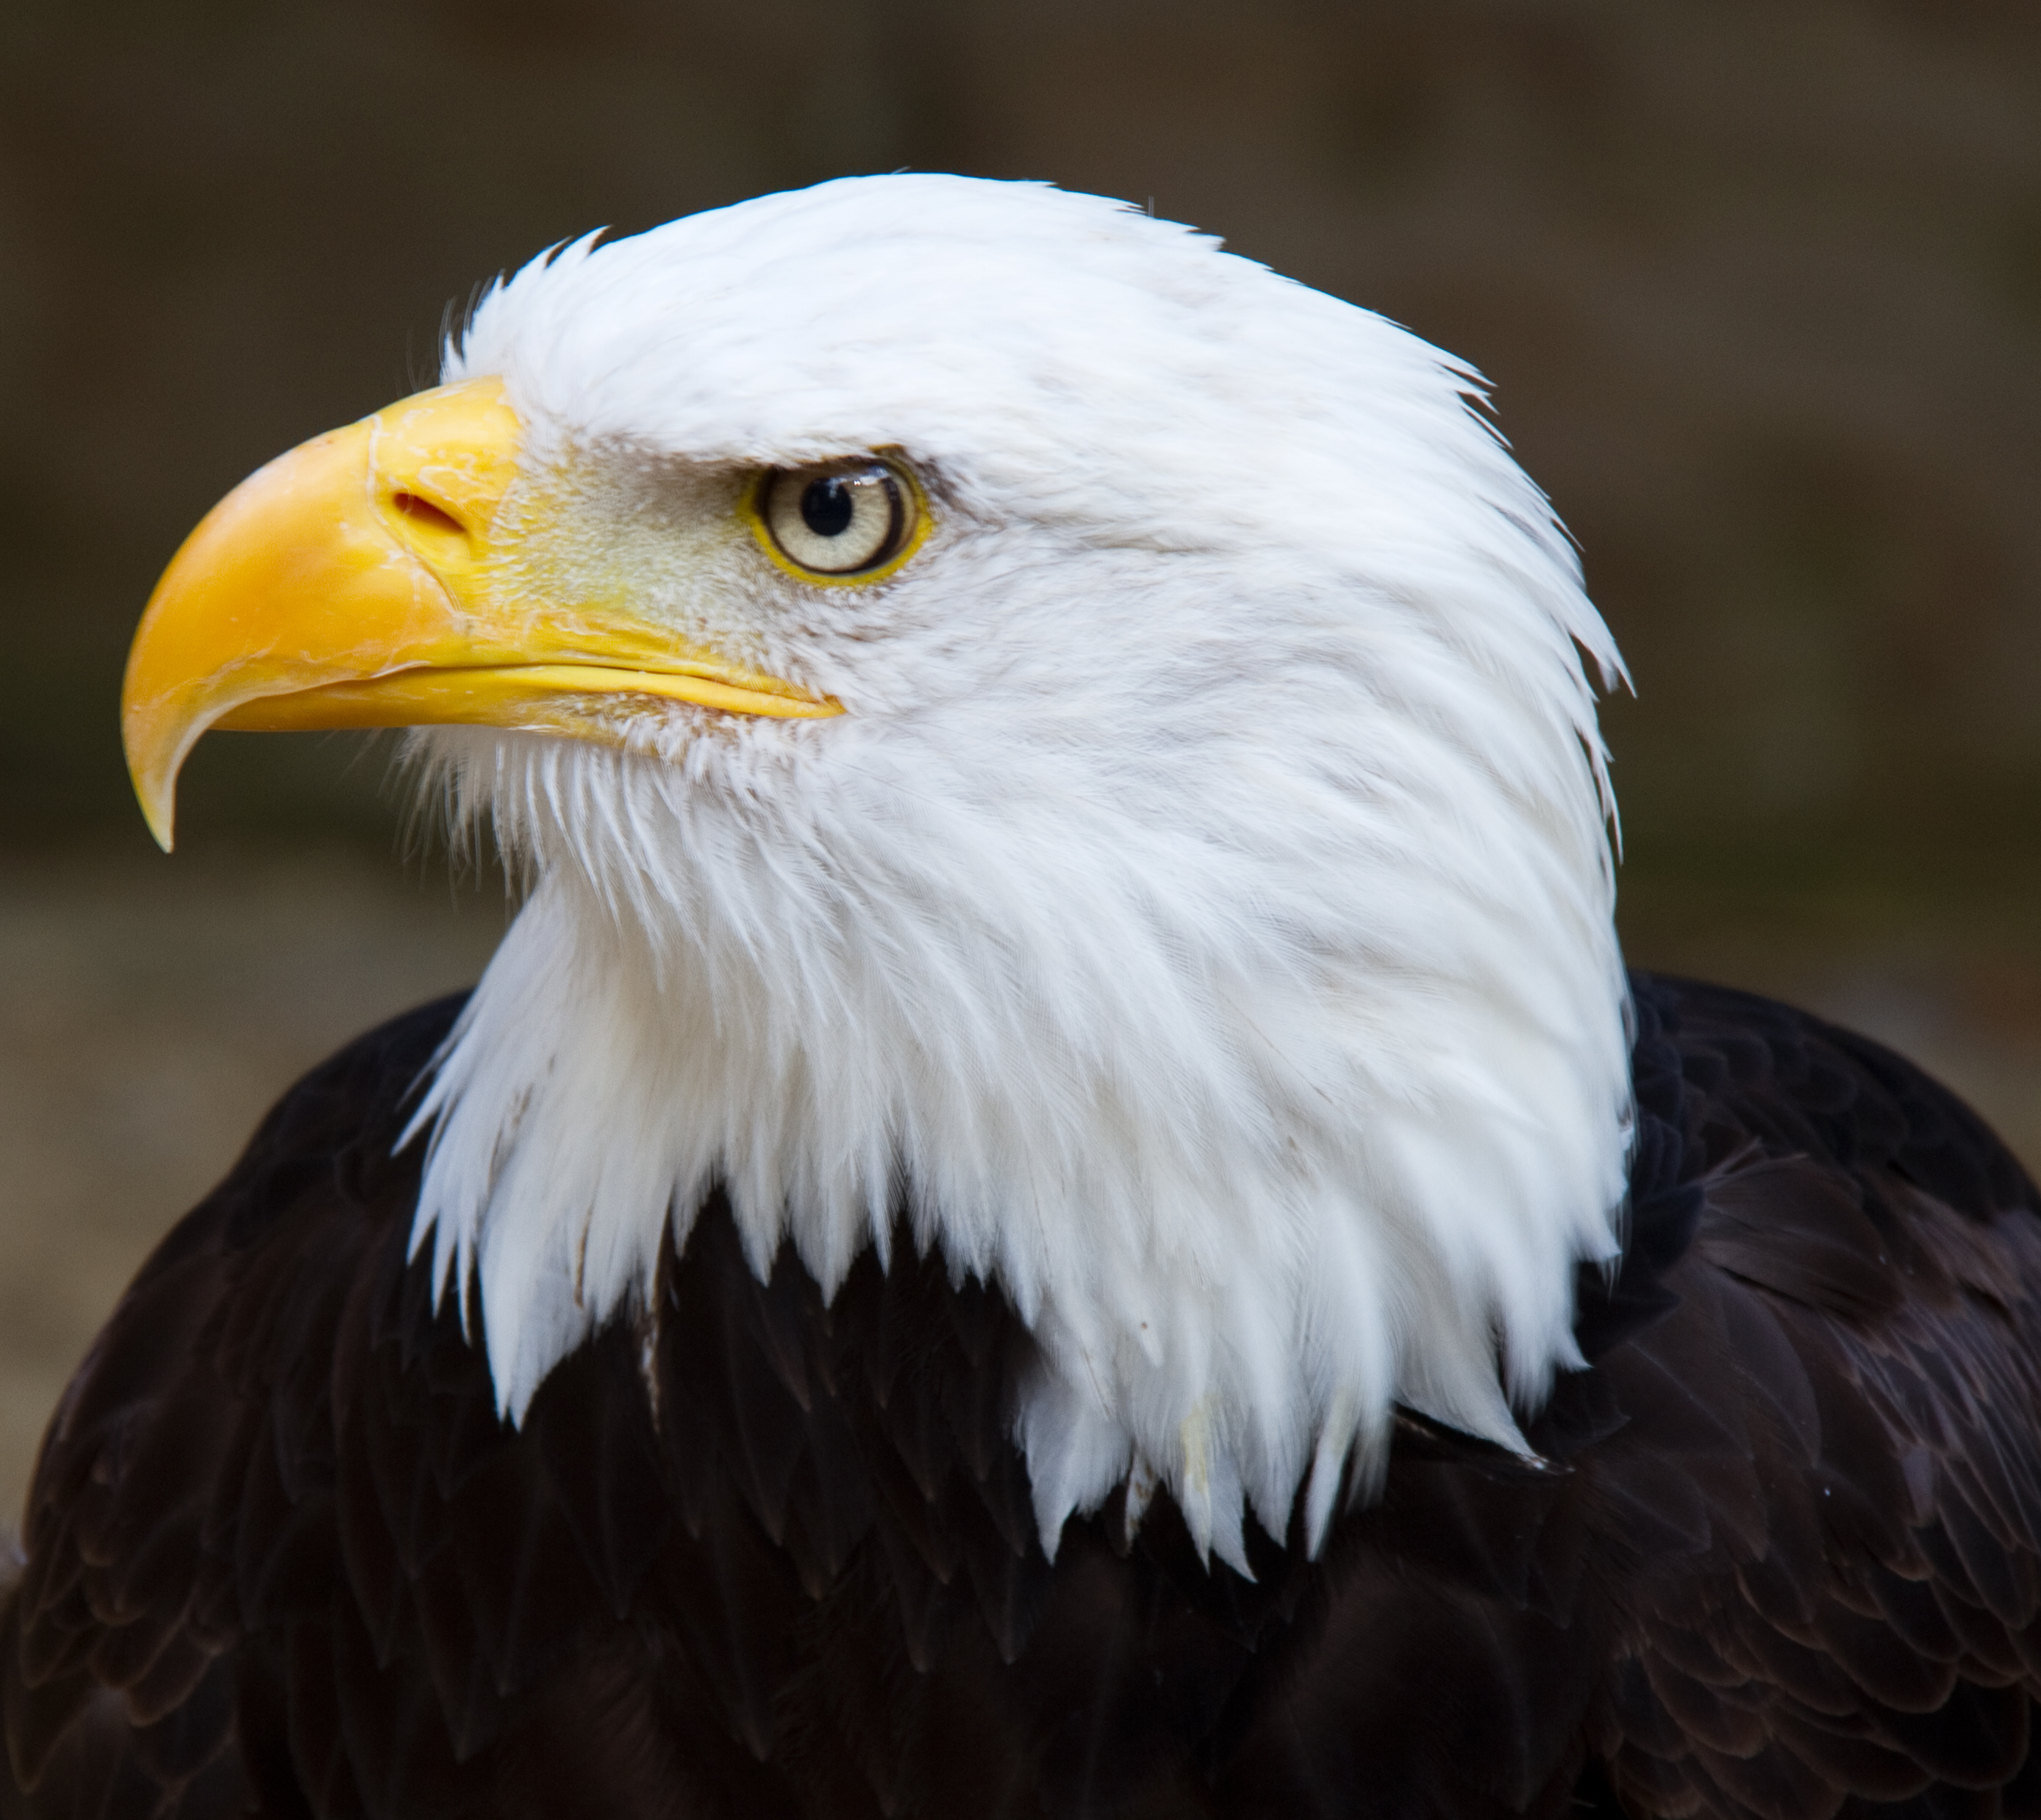 File:Bald Eagle Head 2 (6021915997).jpg - Wikimedia Commons